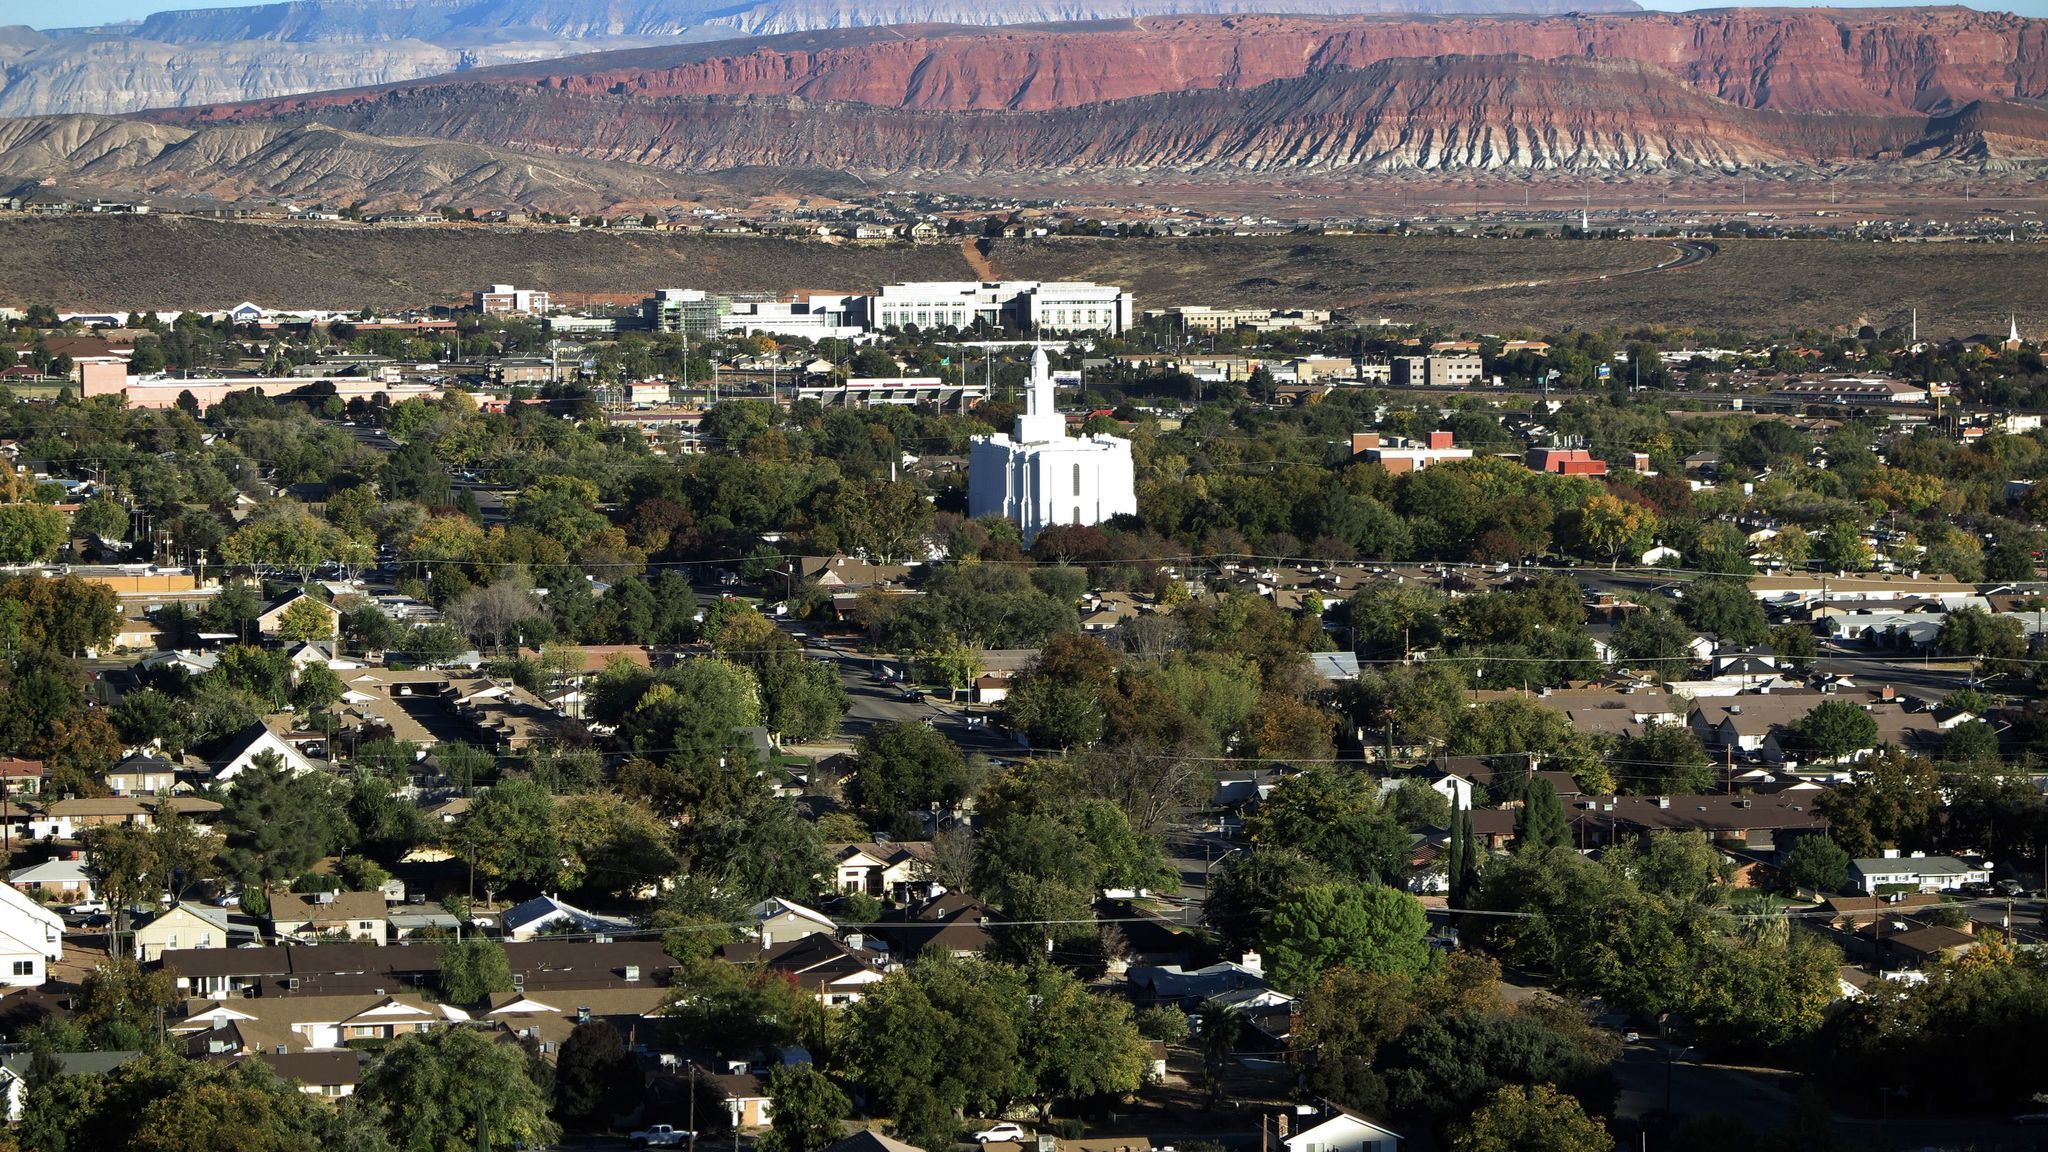 St. George, Utah, is the largest city and county seat of Washington County, one of the country's fastest-growing metropolitan regions